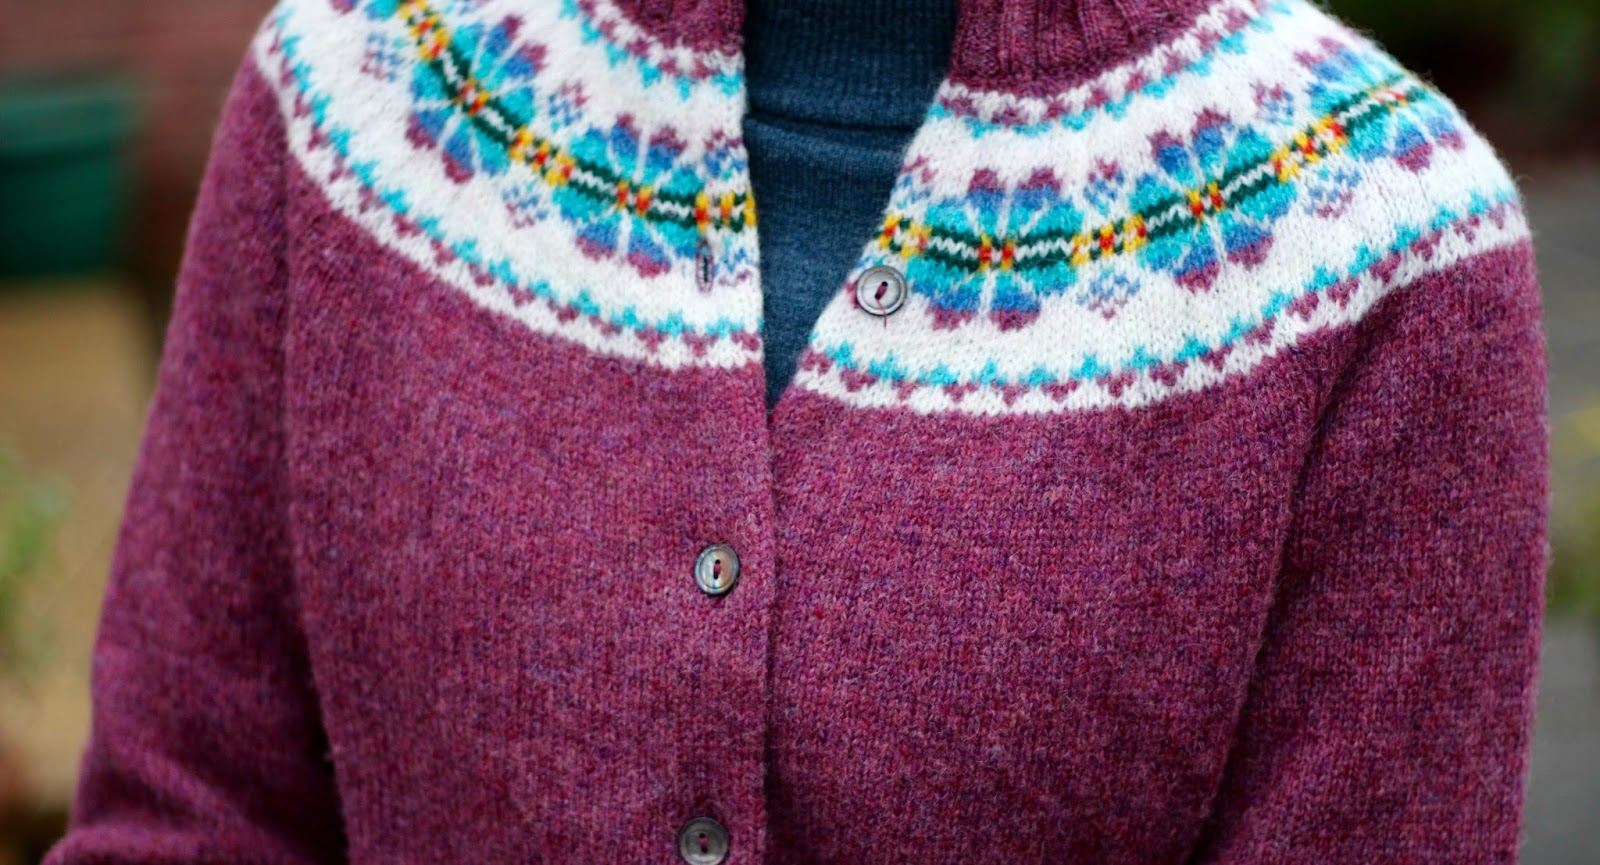 Vintage Fair Isle | Fake Fabulous